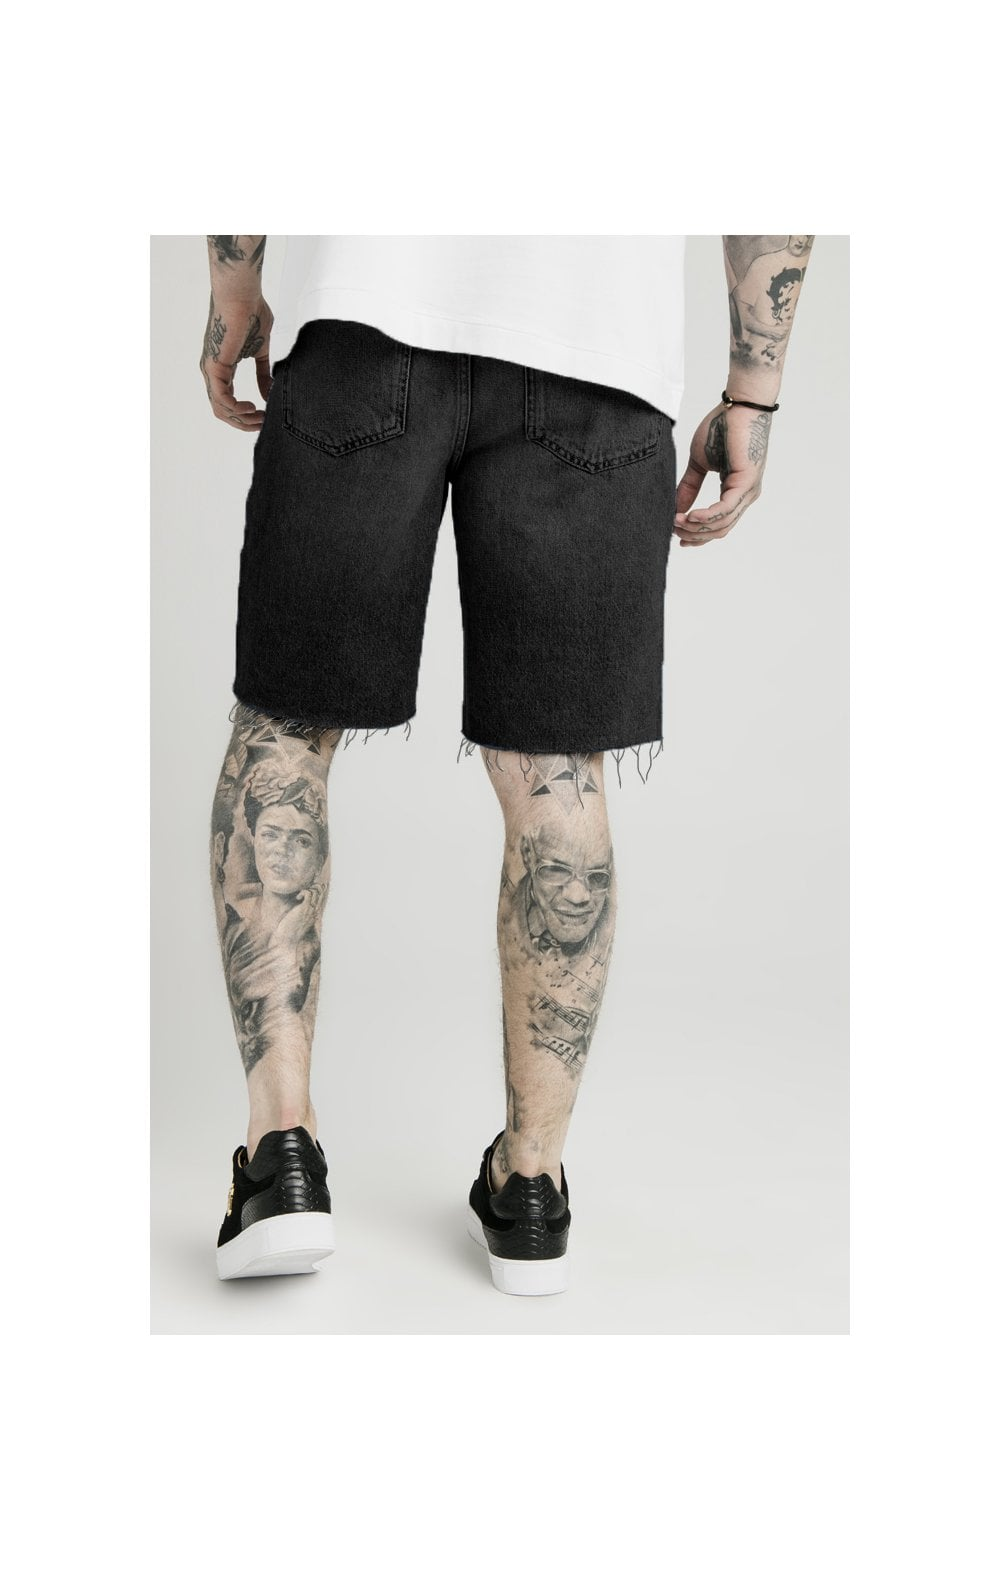 SikSilk x Dani Alves Loose Fit Denim Shorts - Black (1)